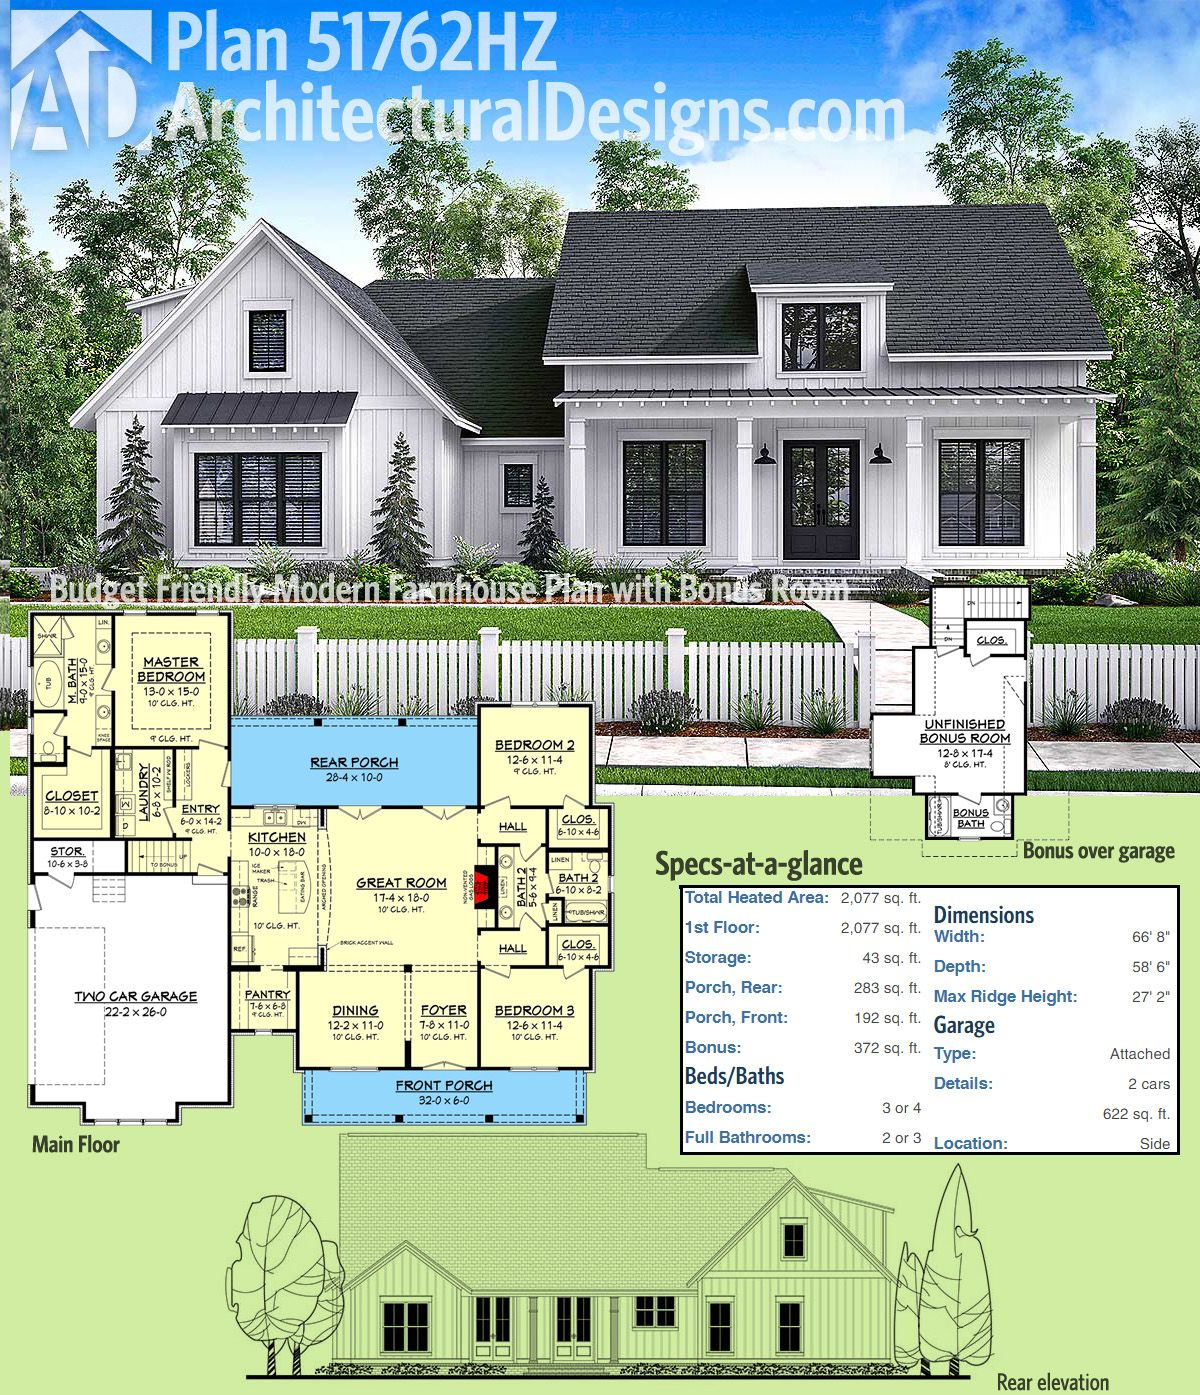 plan 51762hz budget friendly modern farmhouse plan with bonus room - Farmhouse Great Room Plans